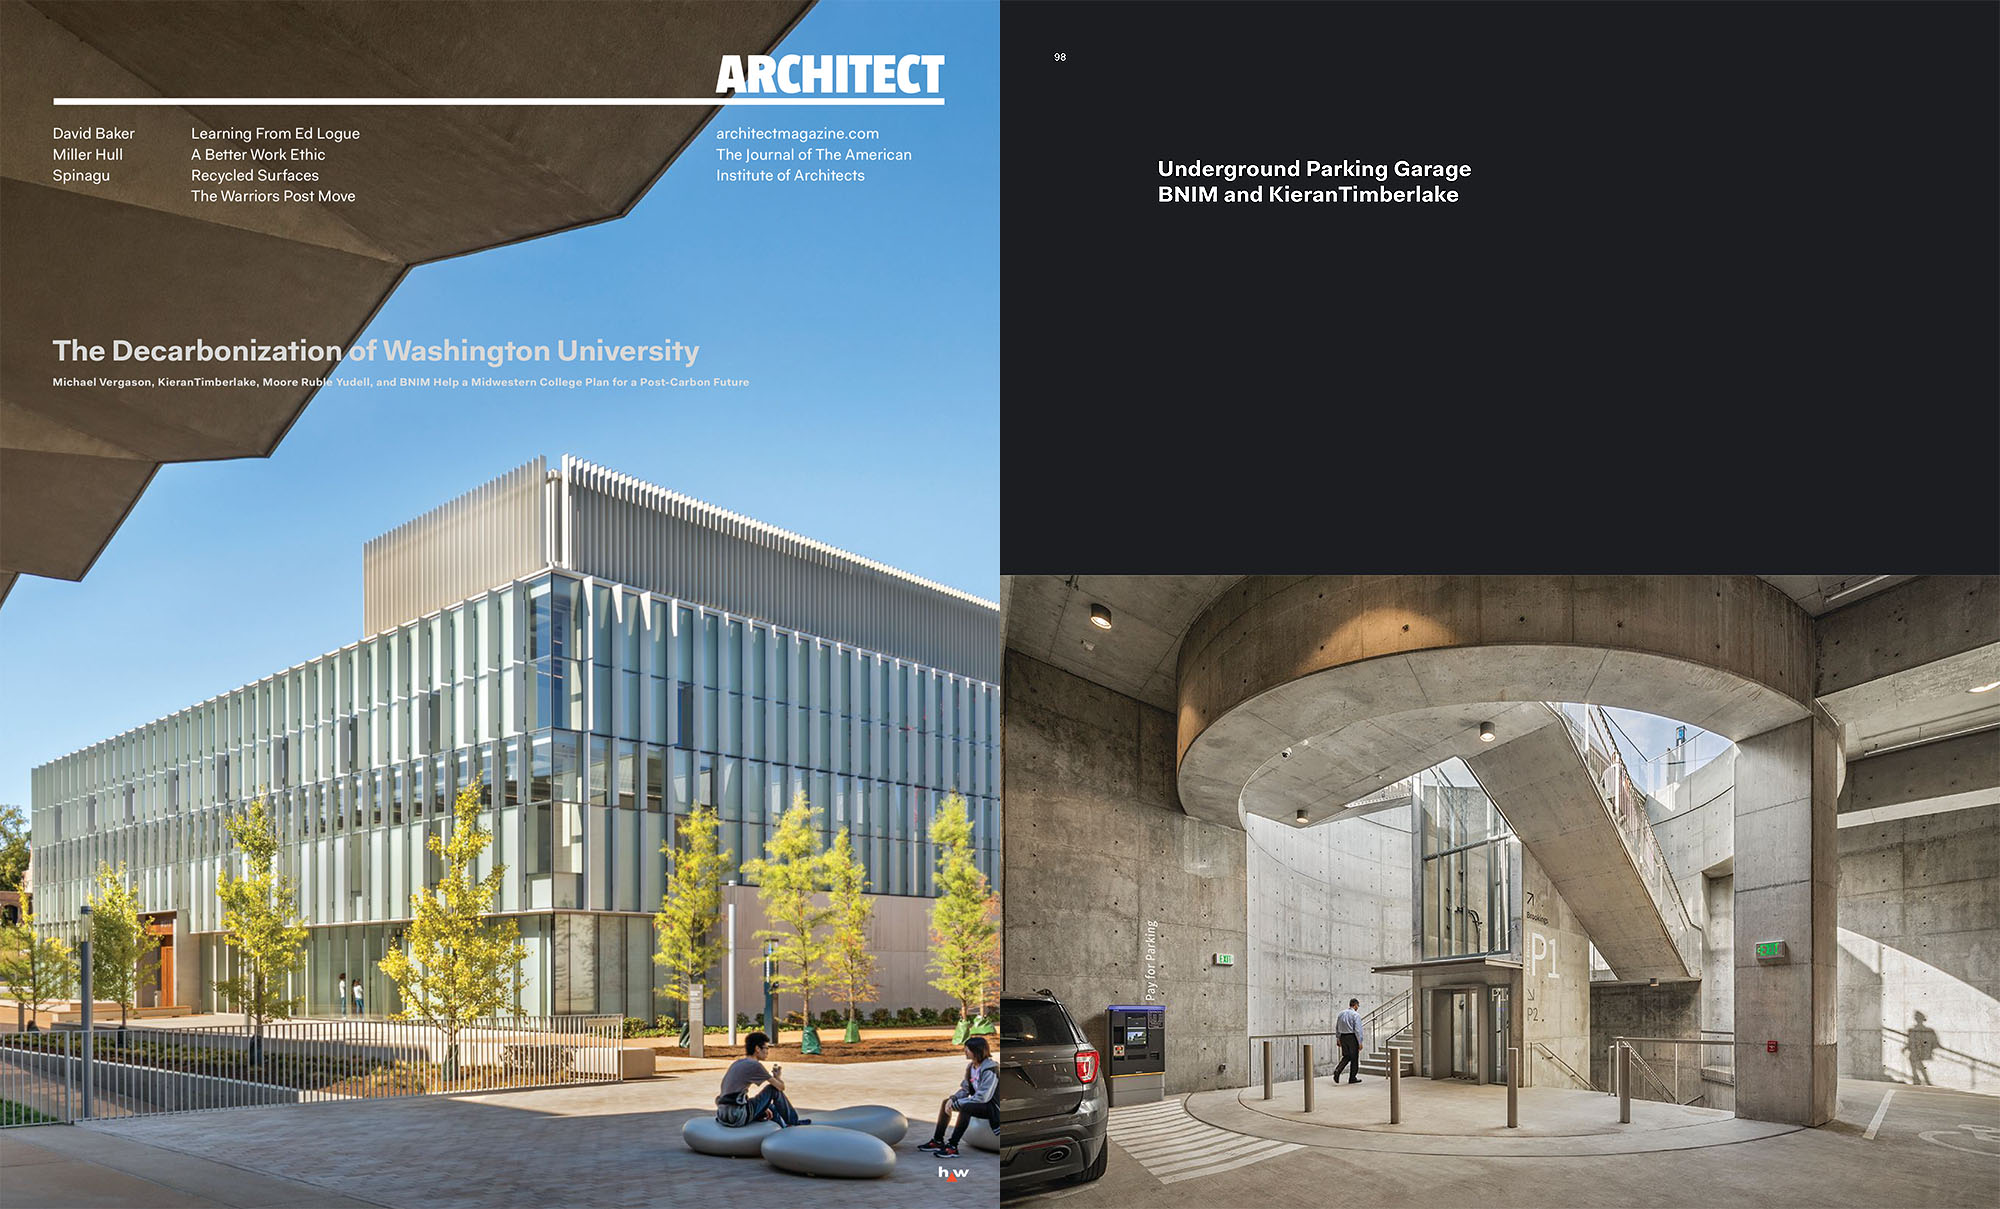 Washington University East Campus Garage featured in Architect Magazine